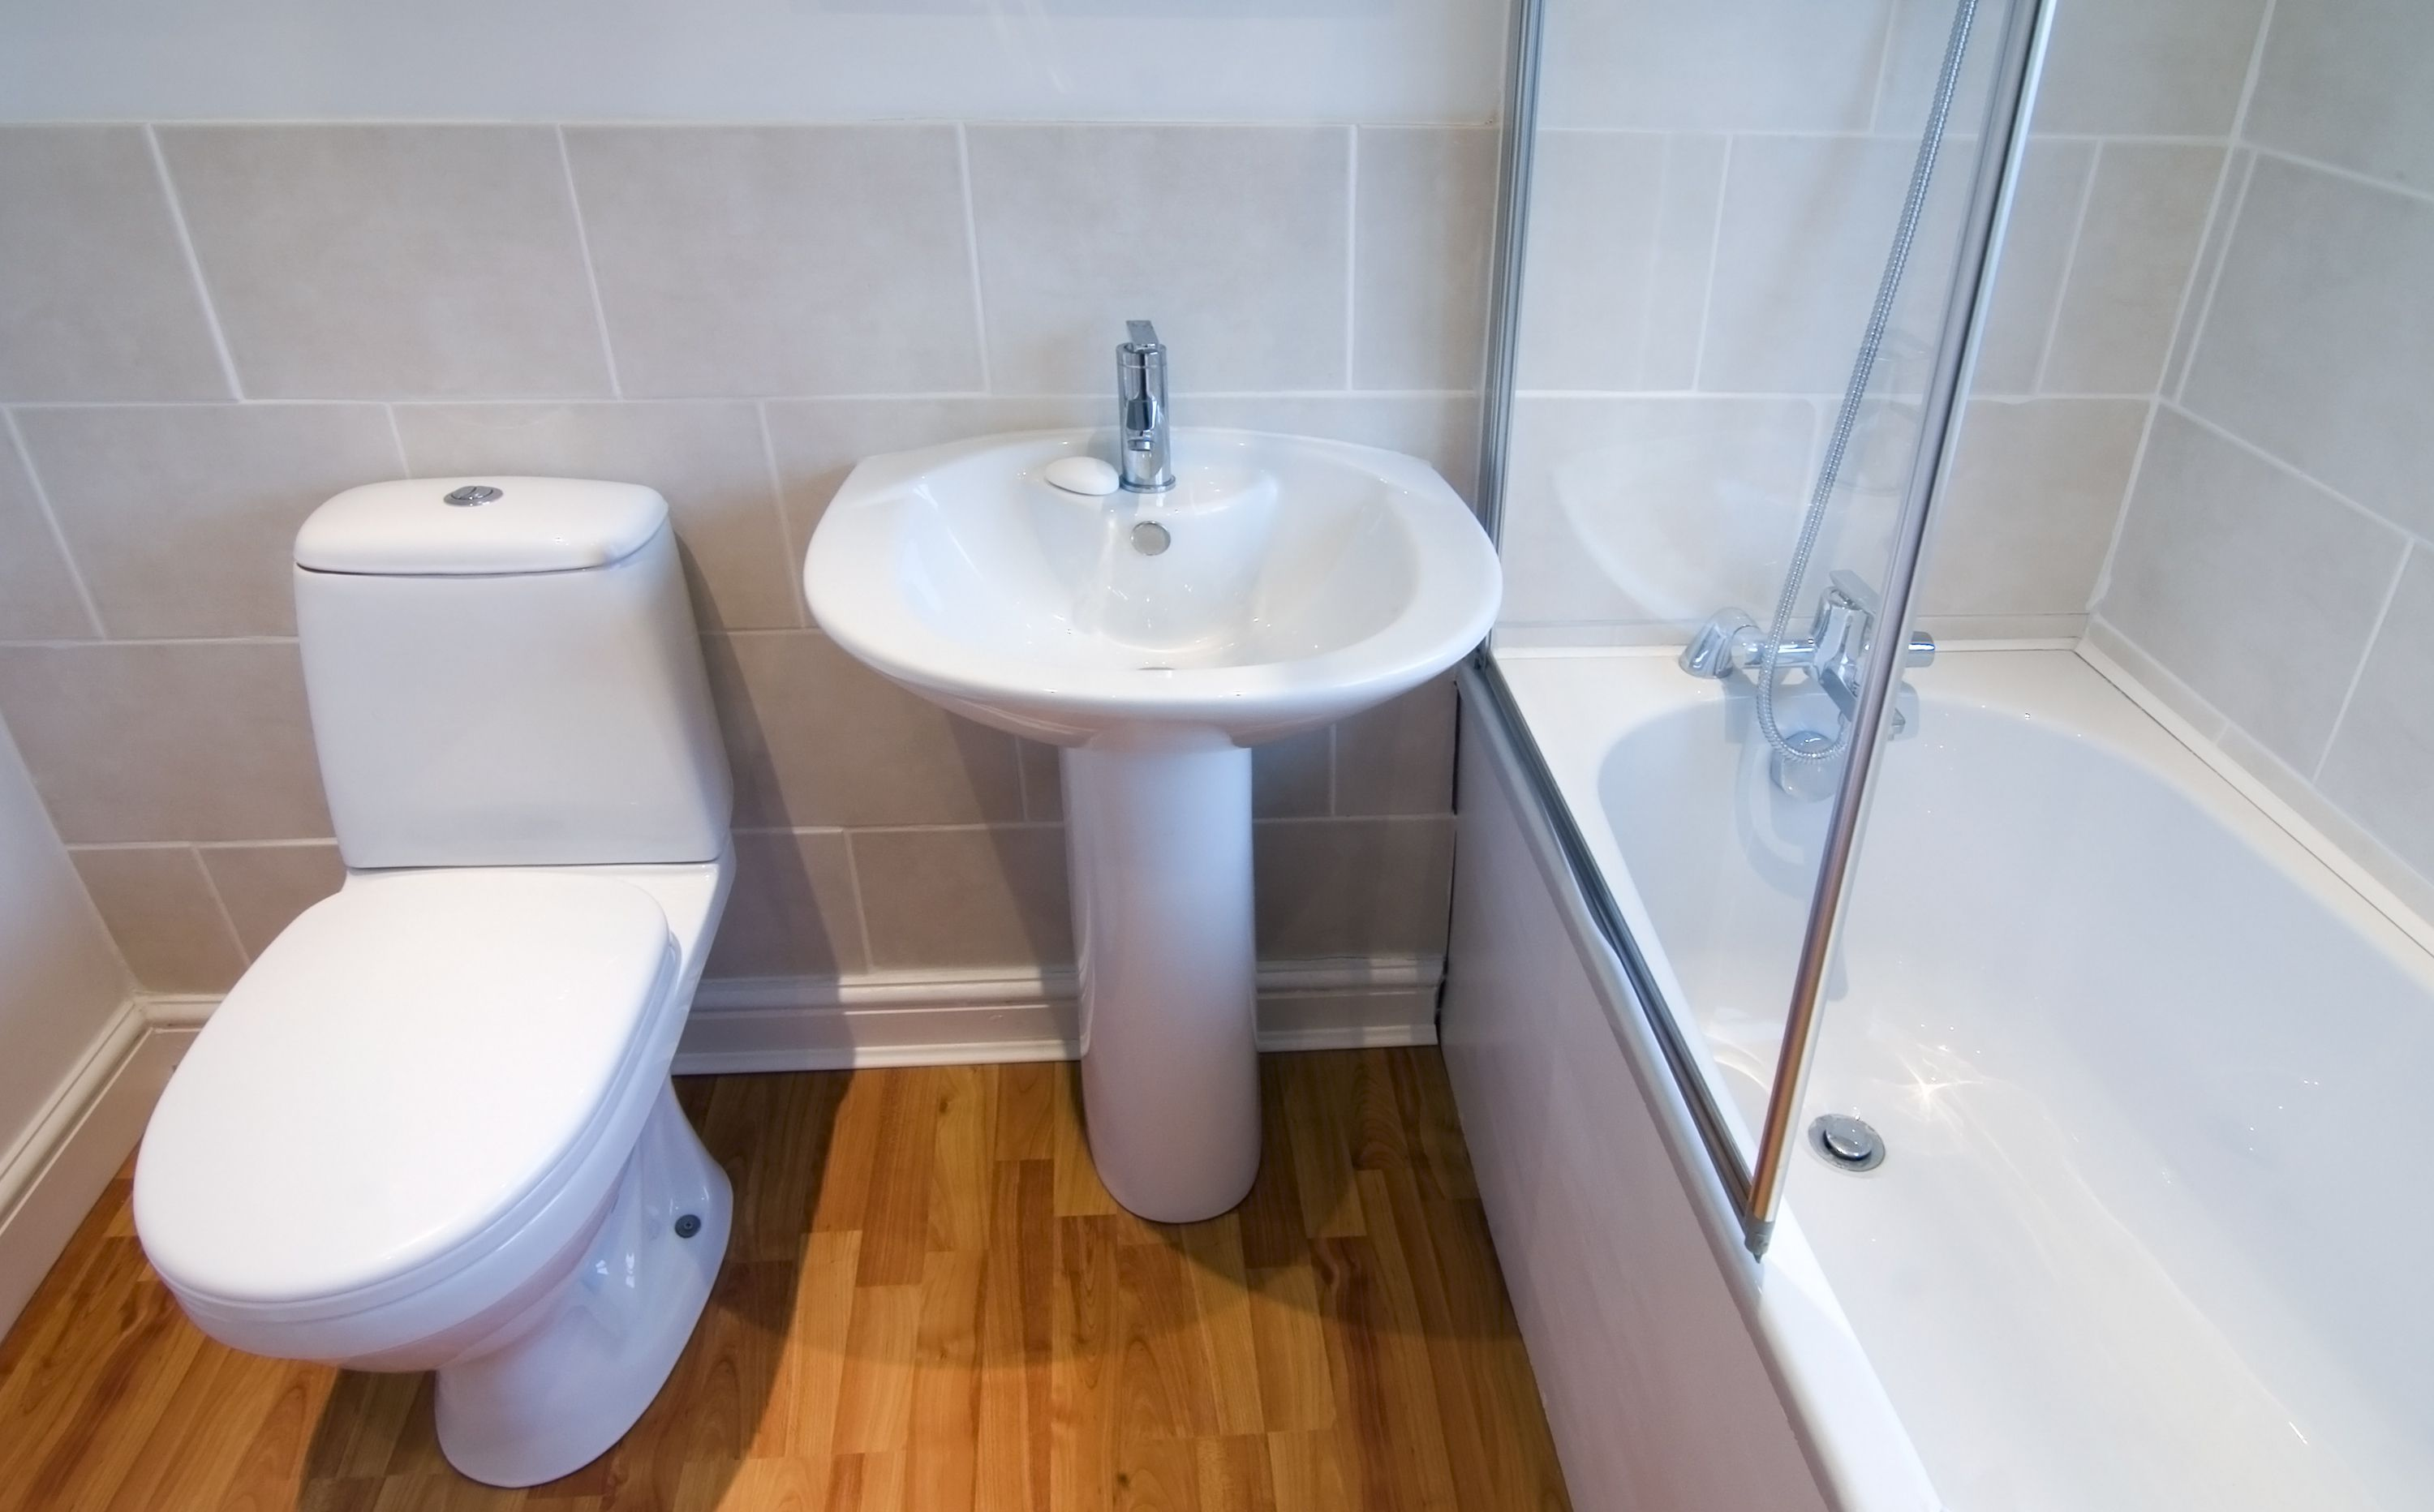 How to install a toilet flange extension Bathroom toilet installation